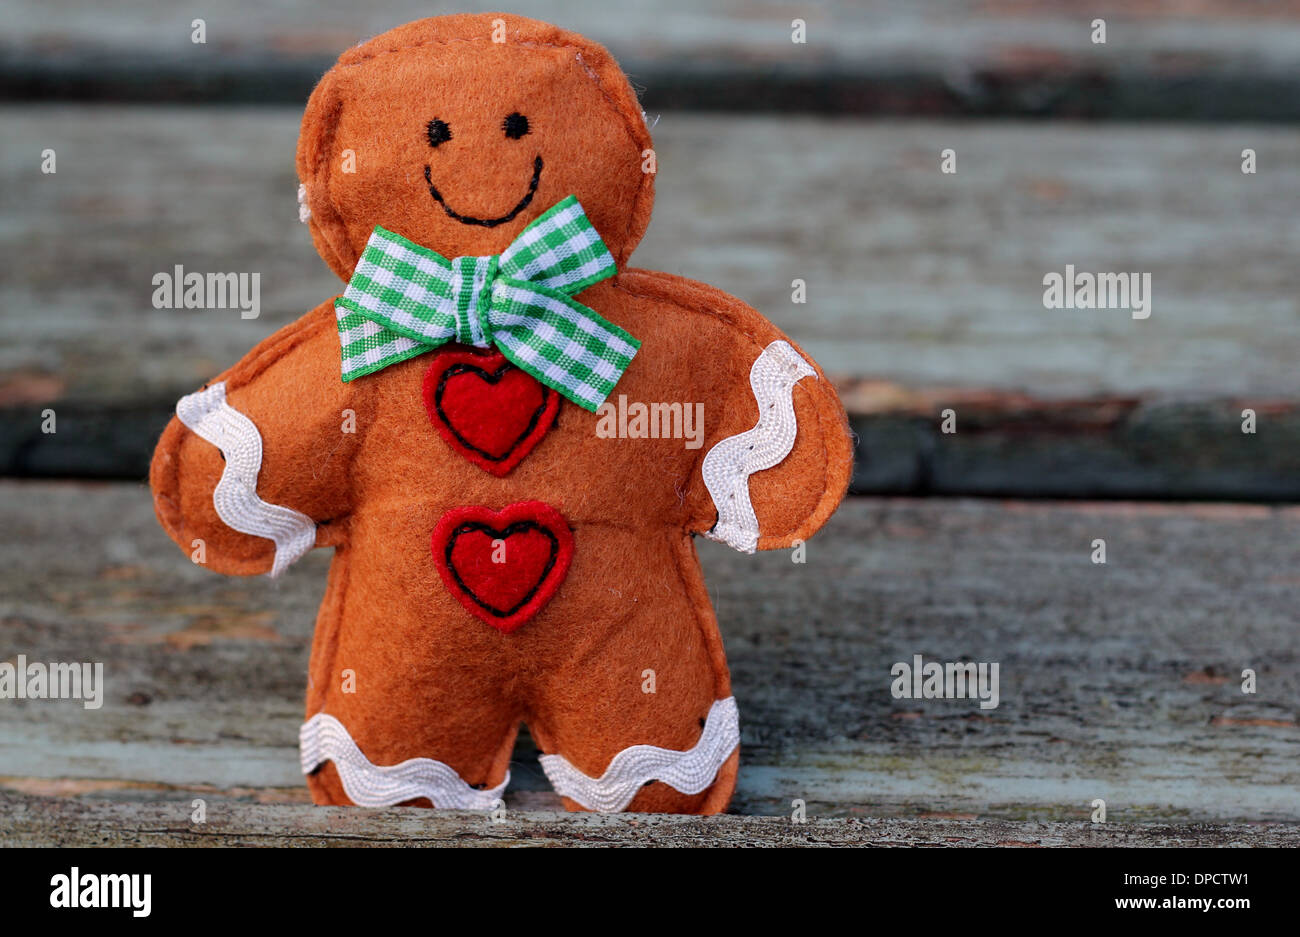 Cute gingerbread man with a smile and red heart buttons stood on shabby chic bench - Stock Image